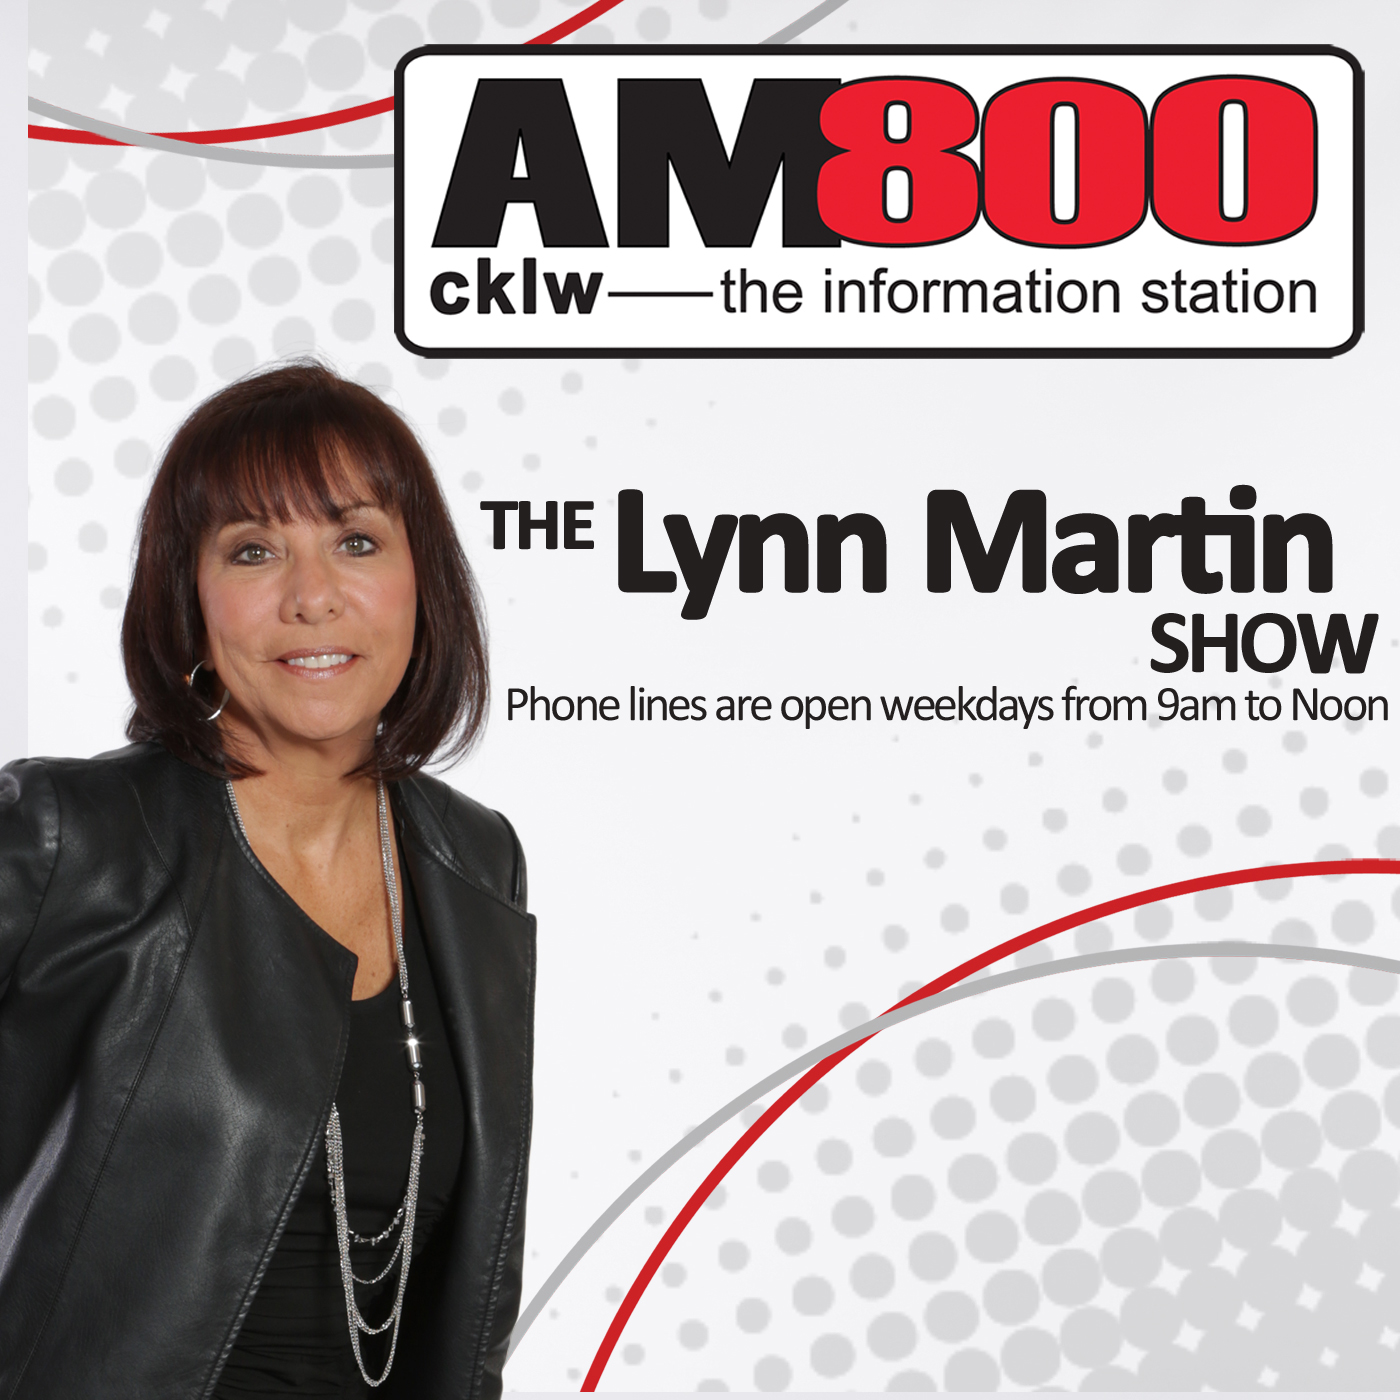 David Anber's Radio Interview on The Lynn Martin Show